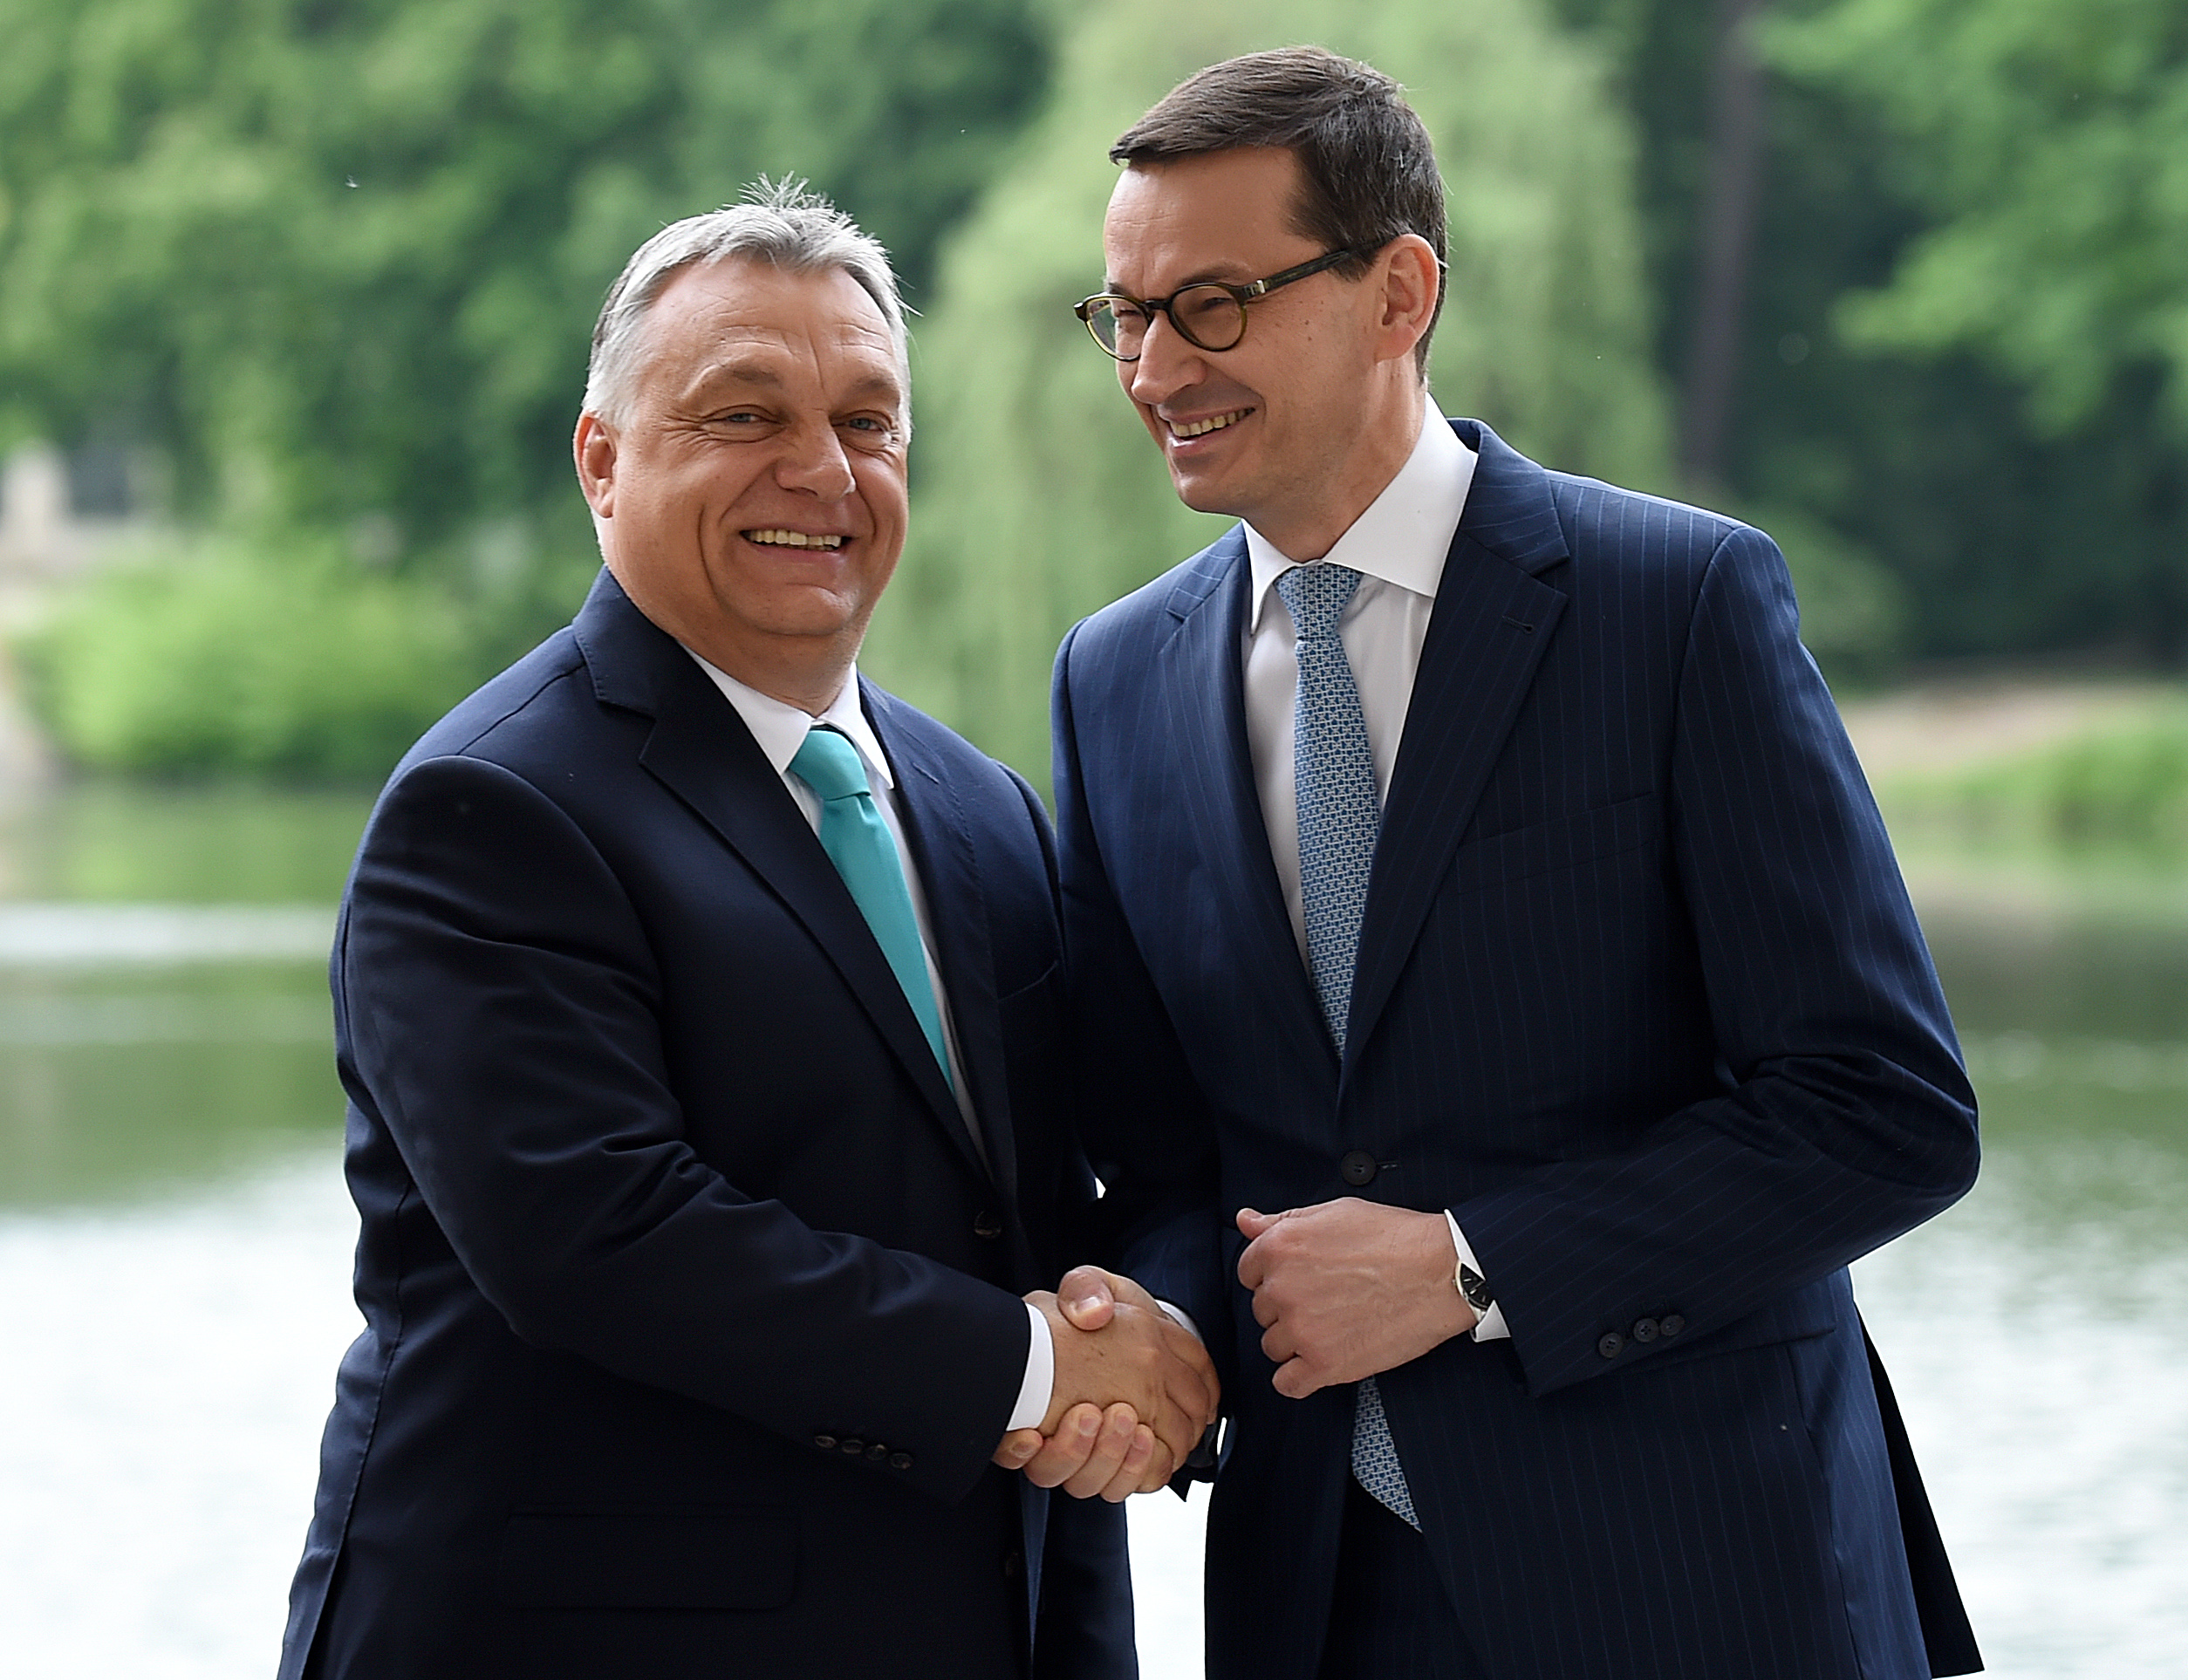 Polish Prime Minister Mateusz Morawiecki shakes hands with Hungarian Prime Minister Viktor Orban (L) during a meeting on May 14, 2018 at the Palace on the Isle in Warsaw's Lazienki Park. (Photo by JANEK SKARZYNSKI / AFP) (Photo credit should read JANEK SKARZYNSKI/AFP/Getty Images)